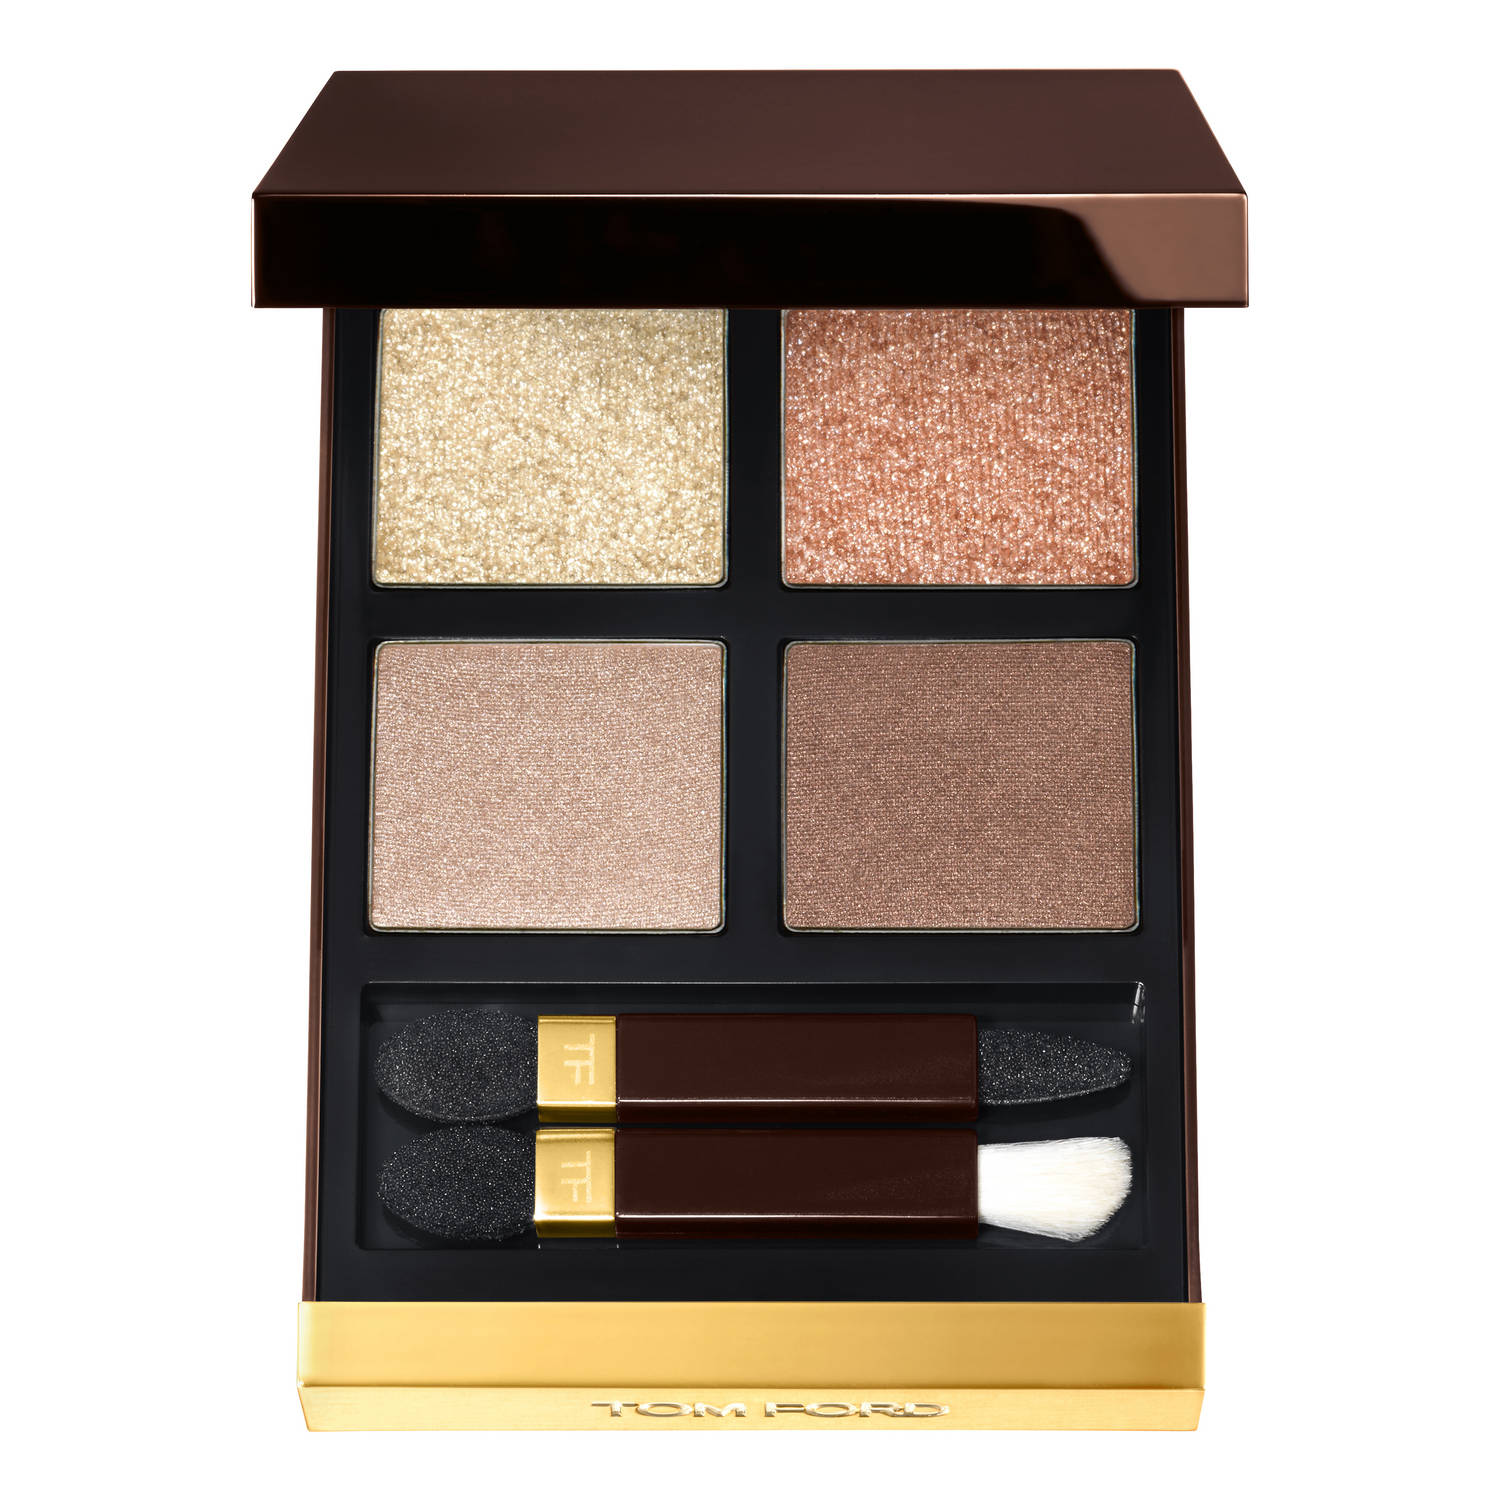 tom ford eye color golden milk is a stunning makeup for winter